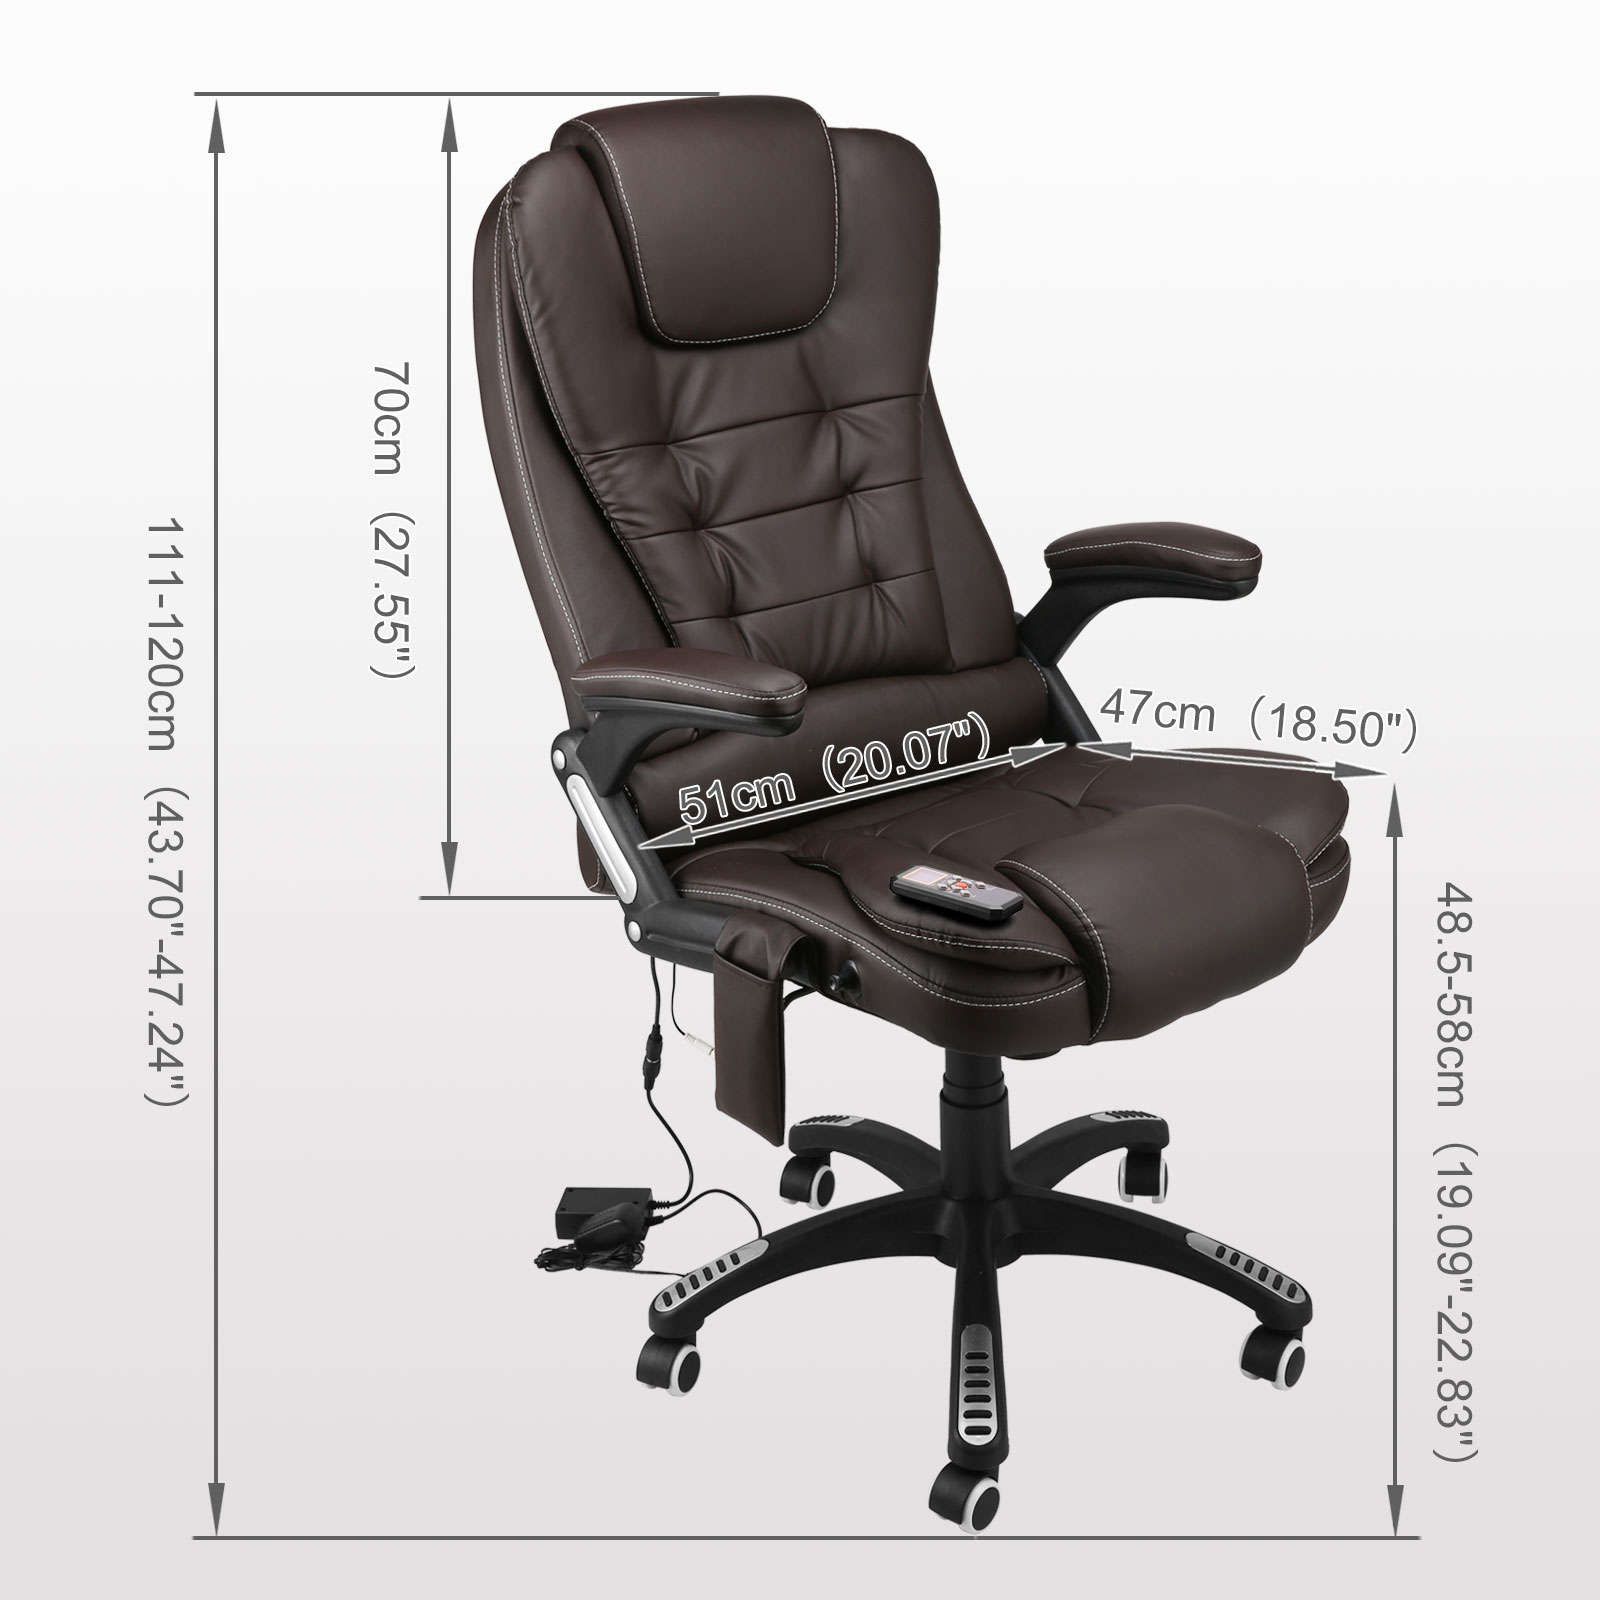 new brown executive ergonomic massage chair heat vibrating